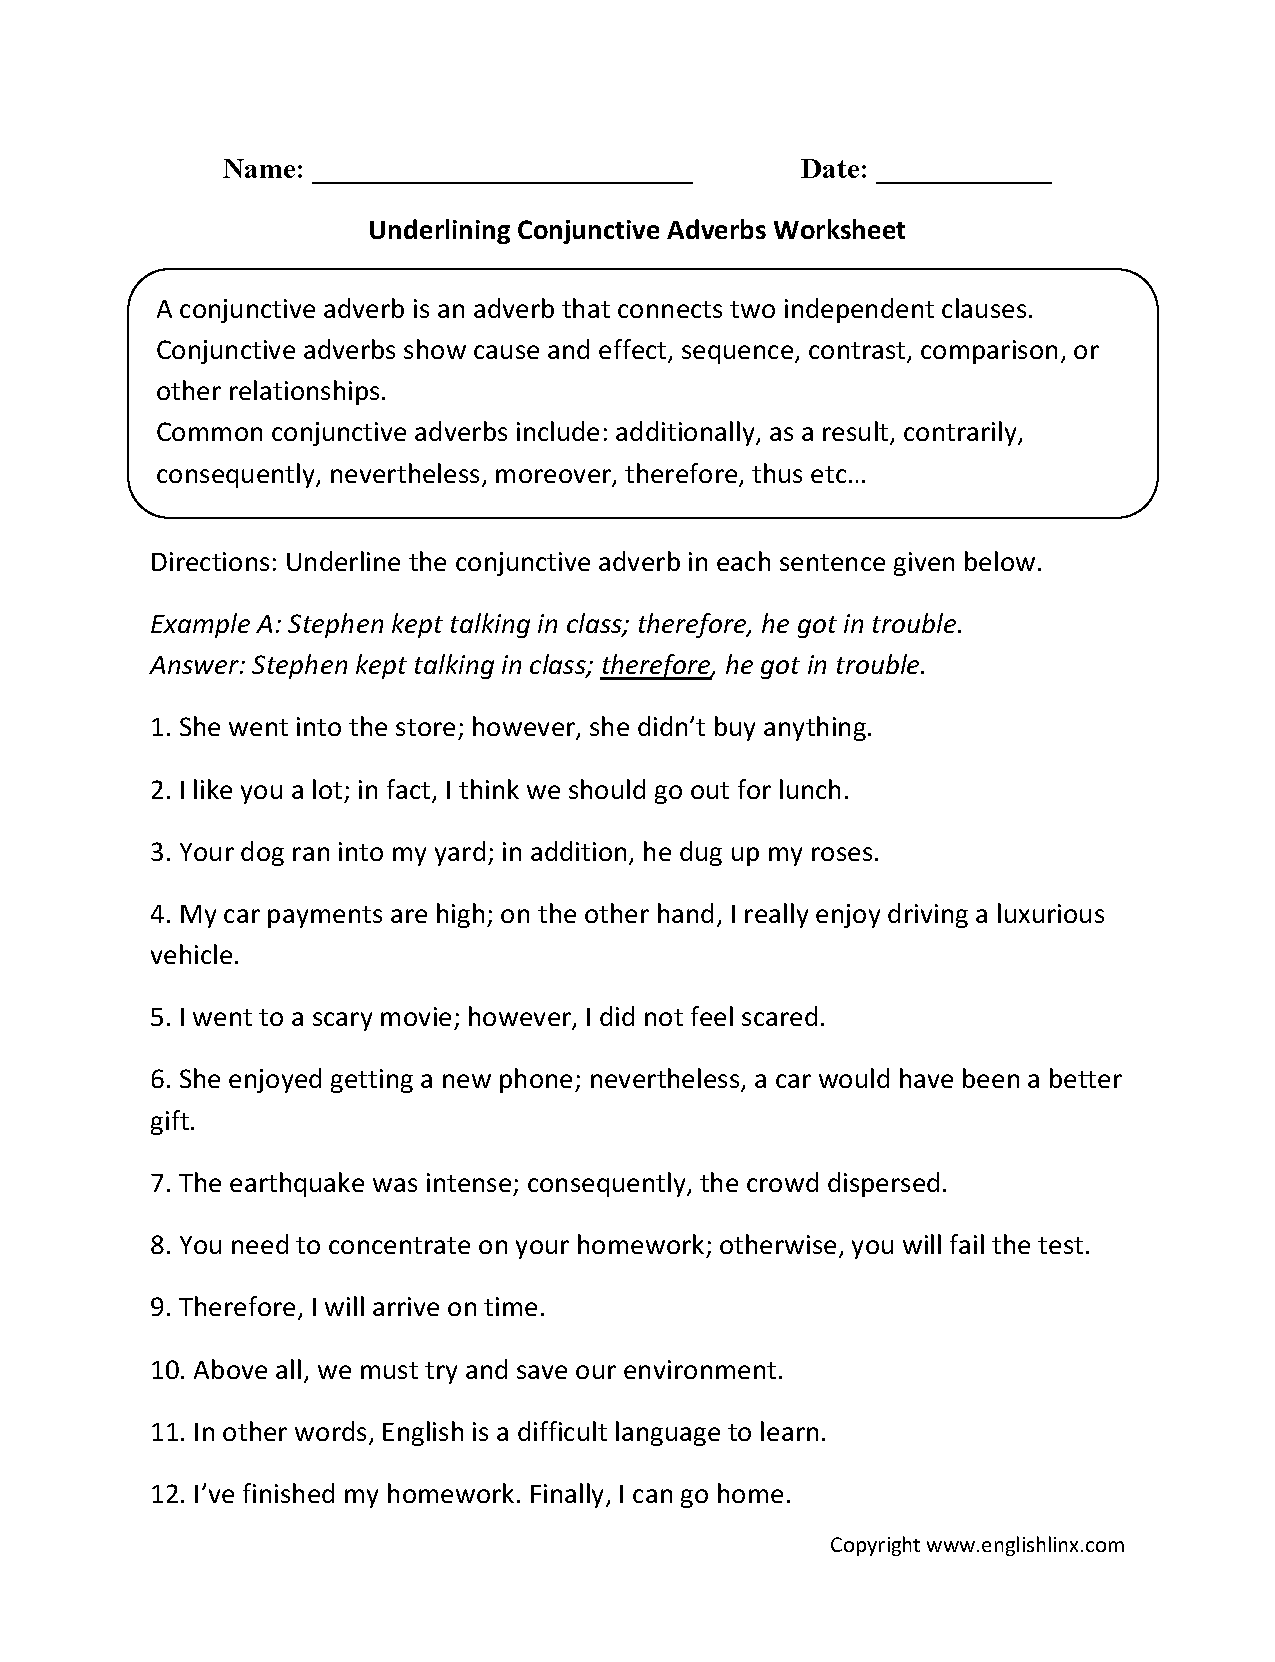 Weirdmailus  Winsome Englishlinxcom  Conjunctions Worksheets With Exciting Worksheet With Breathtaking Math Adding And Subtracting Worksheets Also Ratio Worksheets With Answers In Addition Printable Goal Setting Worksheet And Romeo And Juliet Vocabulary Worksheets As Well As Free Th Grade Reading Worksheets Additionally Suffix Practice Worksheet From Englishlinxcom With Weirdmailus  Exciting Englishlinxcom  Conjunctions Worksheets With Breathtaking Worksheet And Winsome Math Adding And Subtracting Worksheets Also Ratio Worksheets With Answers In Addition Printable Goal Setting Worksheet From Englishlinxcom